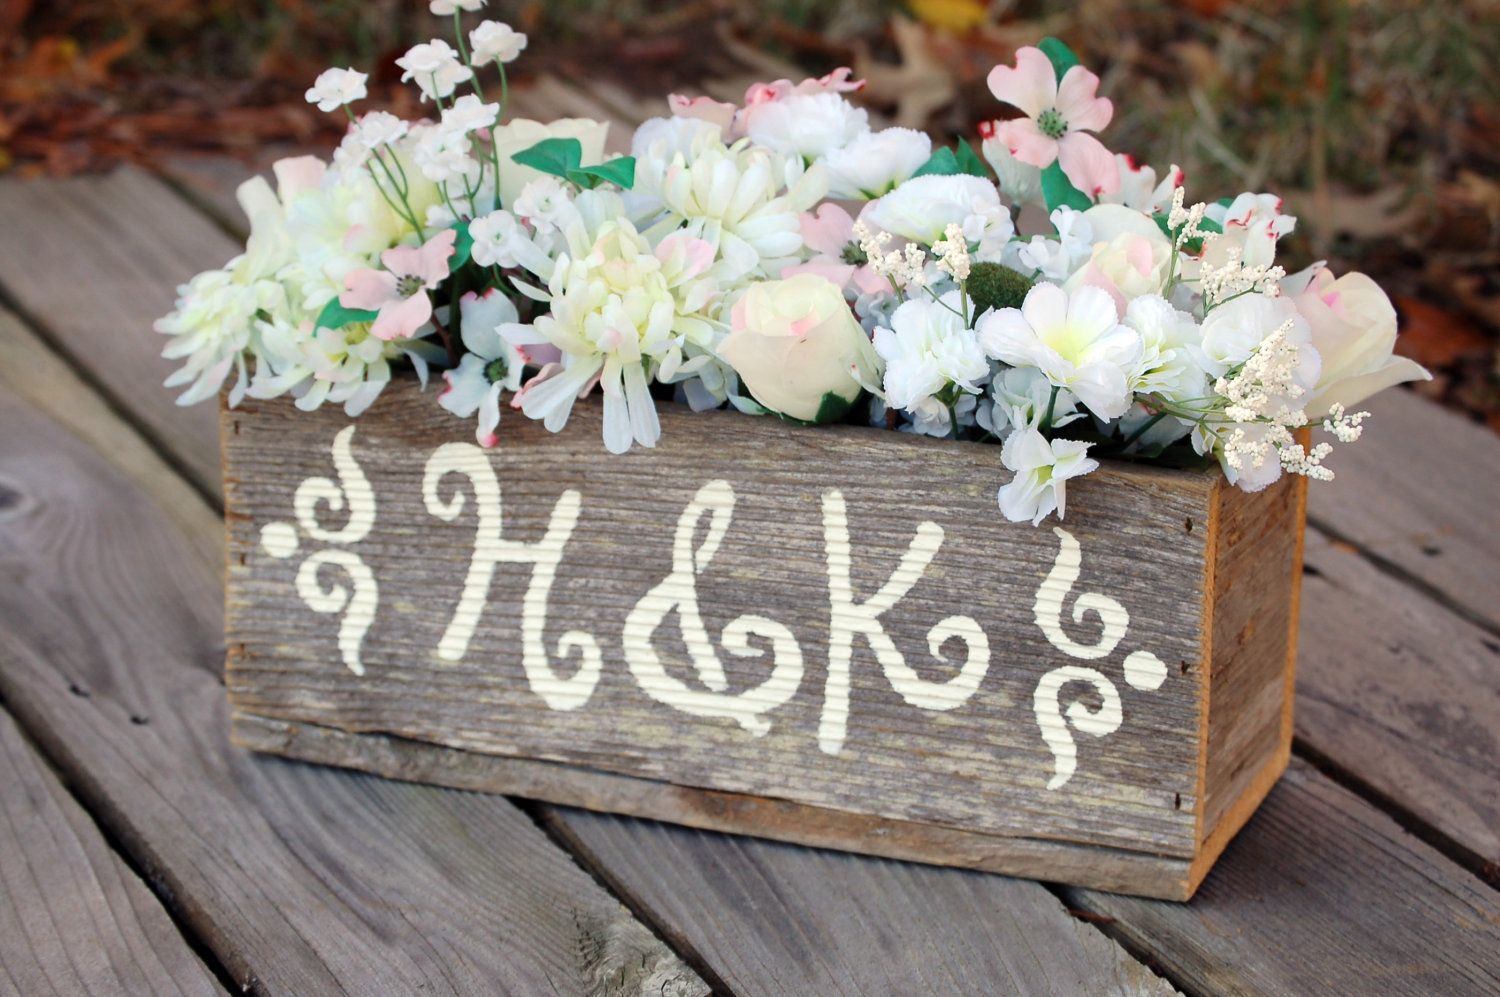 Personalized wood centerpiece flower vase flower box table personalized wood centerpiece flower vase flower box table decorations reception decor rusitc chic wedding rustic table junglespirit Images